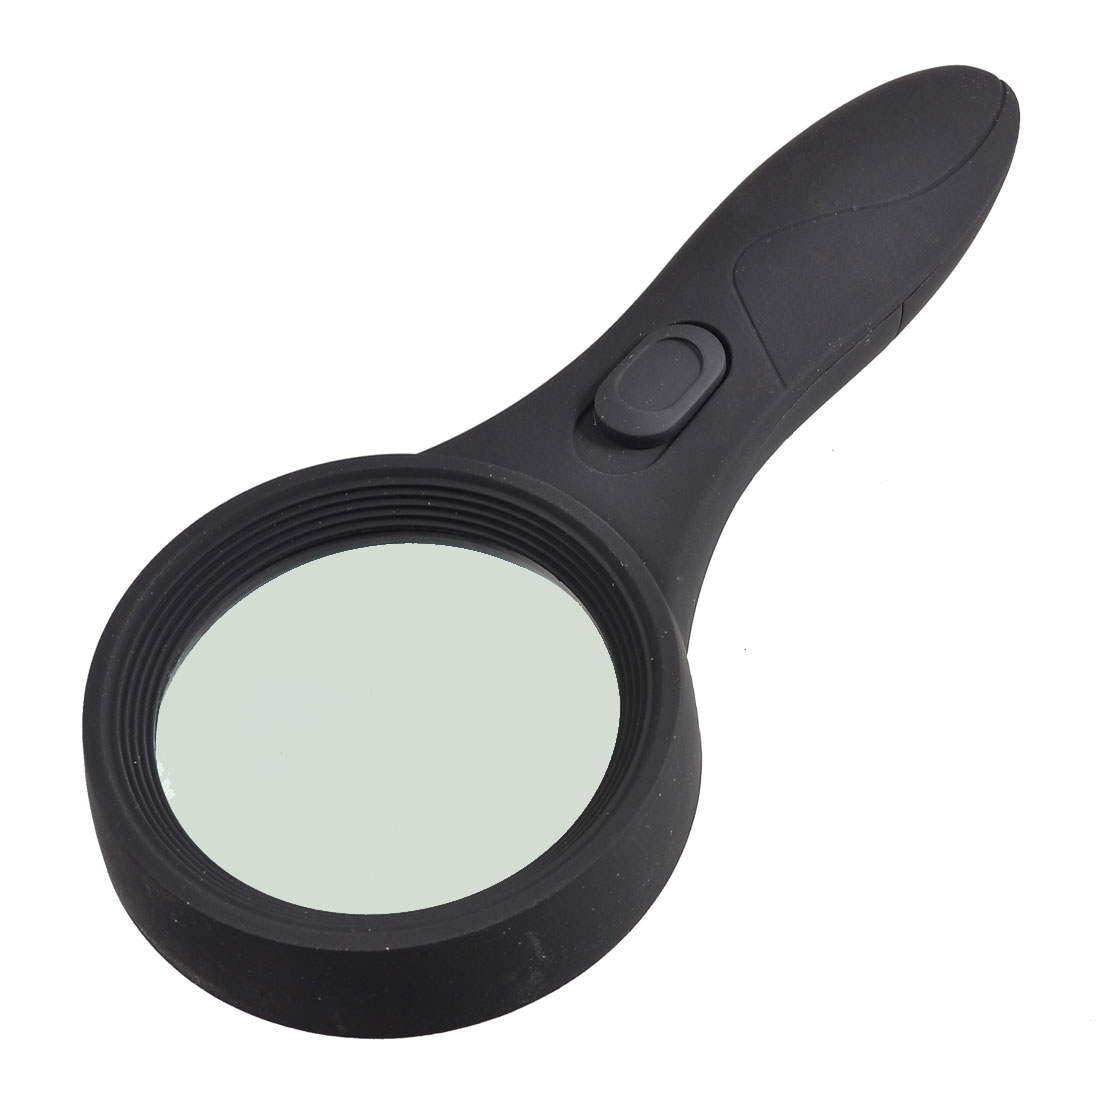 60mm Len Dia White Light 6 LED Illuminated Magnifier 4X Magnifying Glass